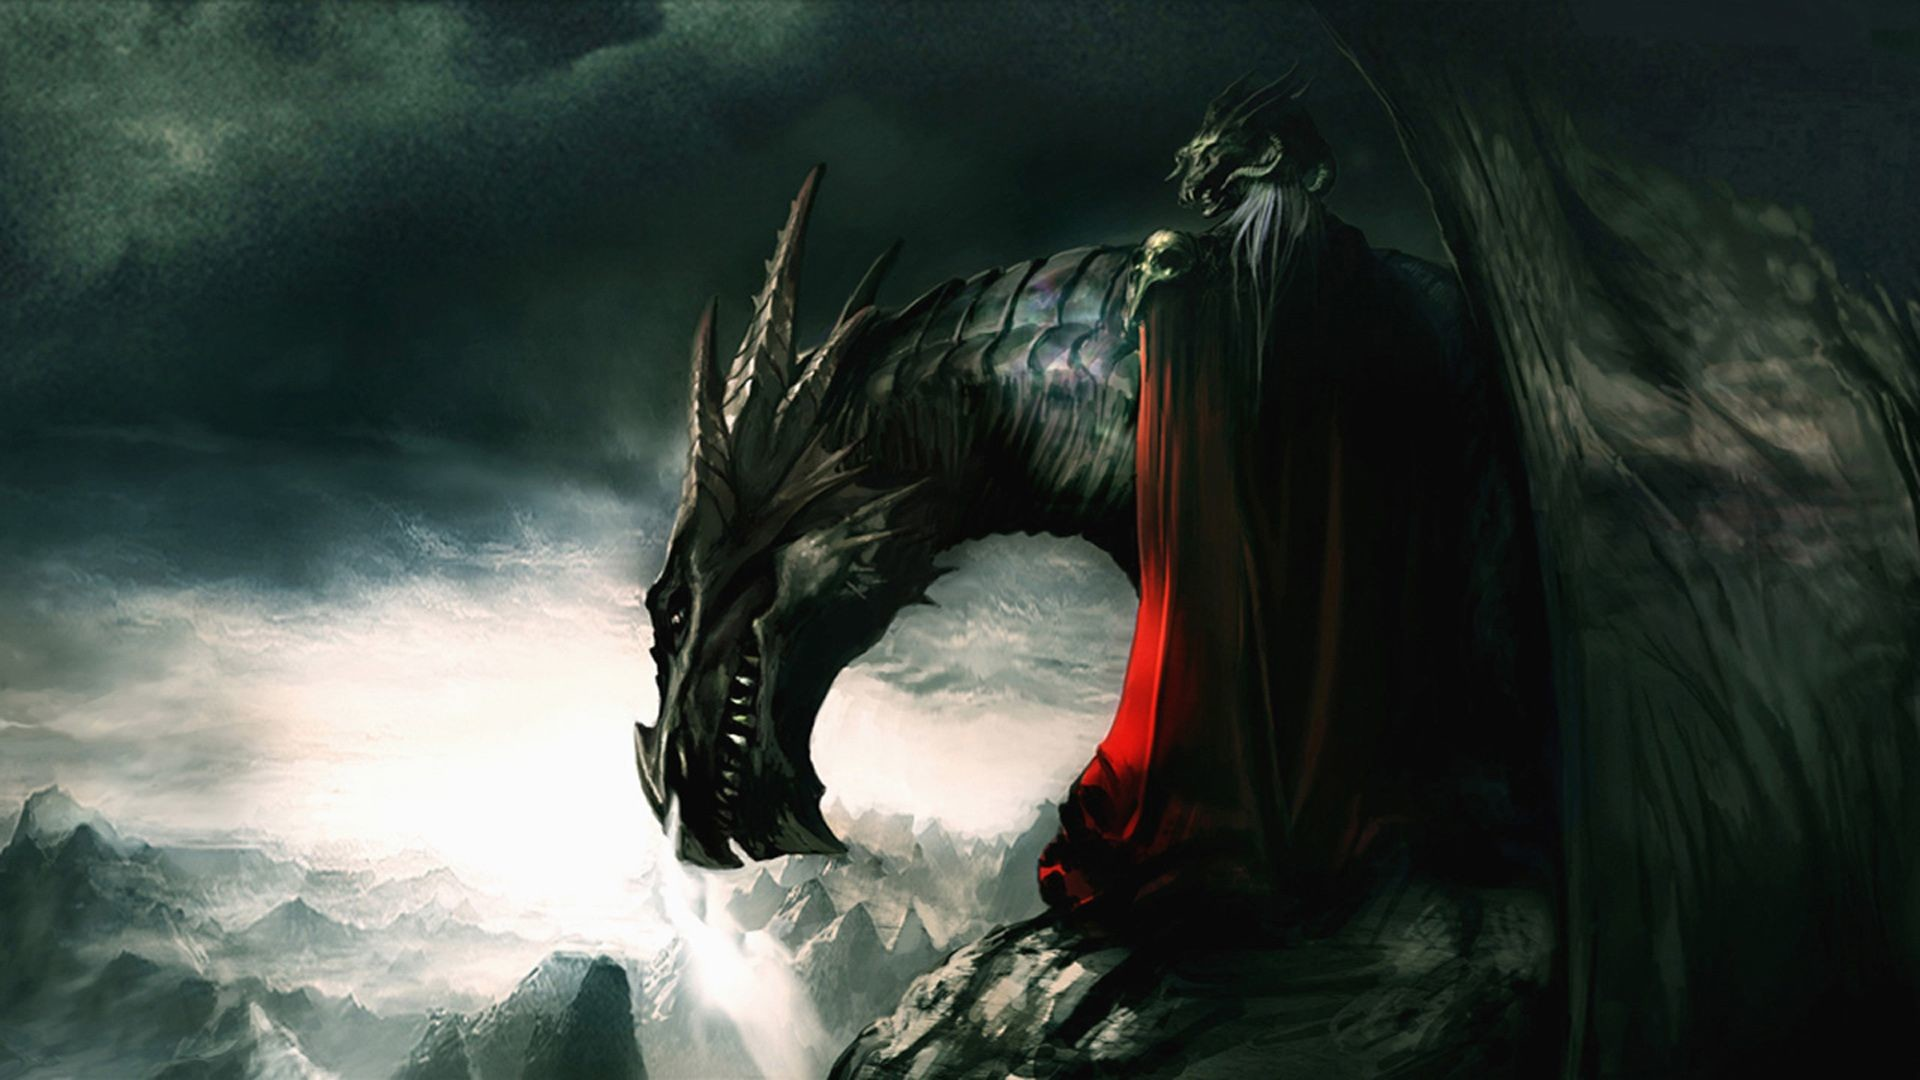 1920x1080 Collection of Dragon Wallpapercom on HDWallpapers Dragon Pictures Wallpapers  Wallpapers)